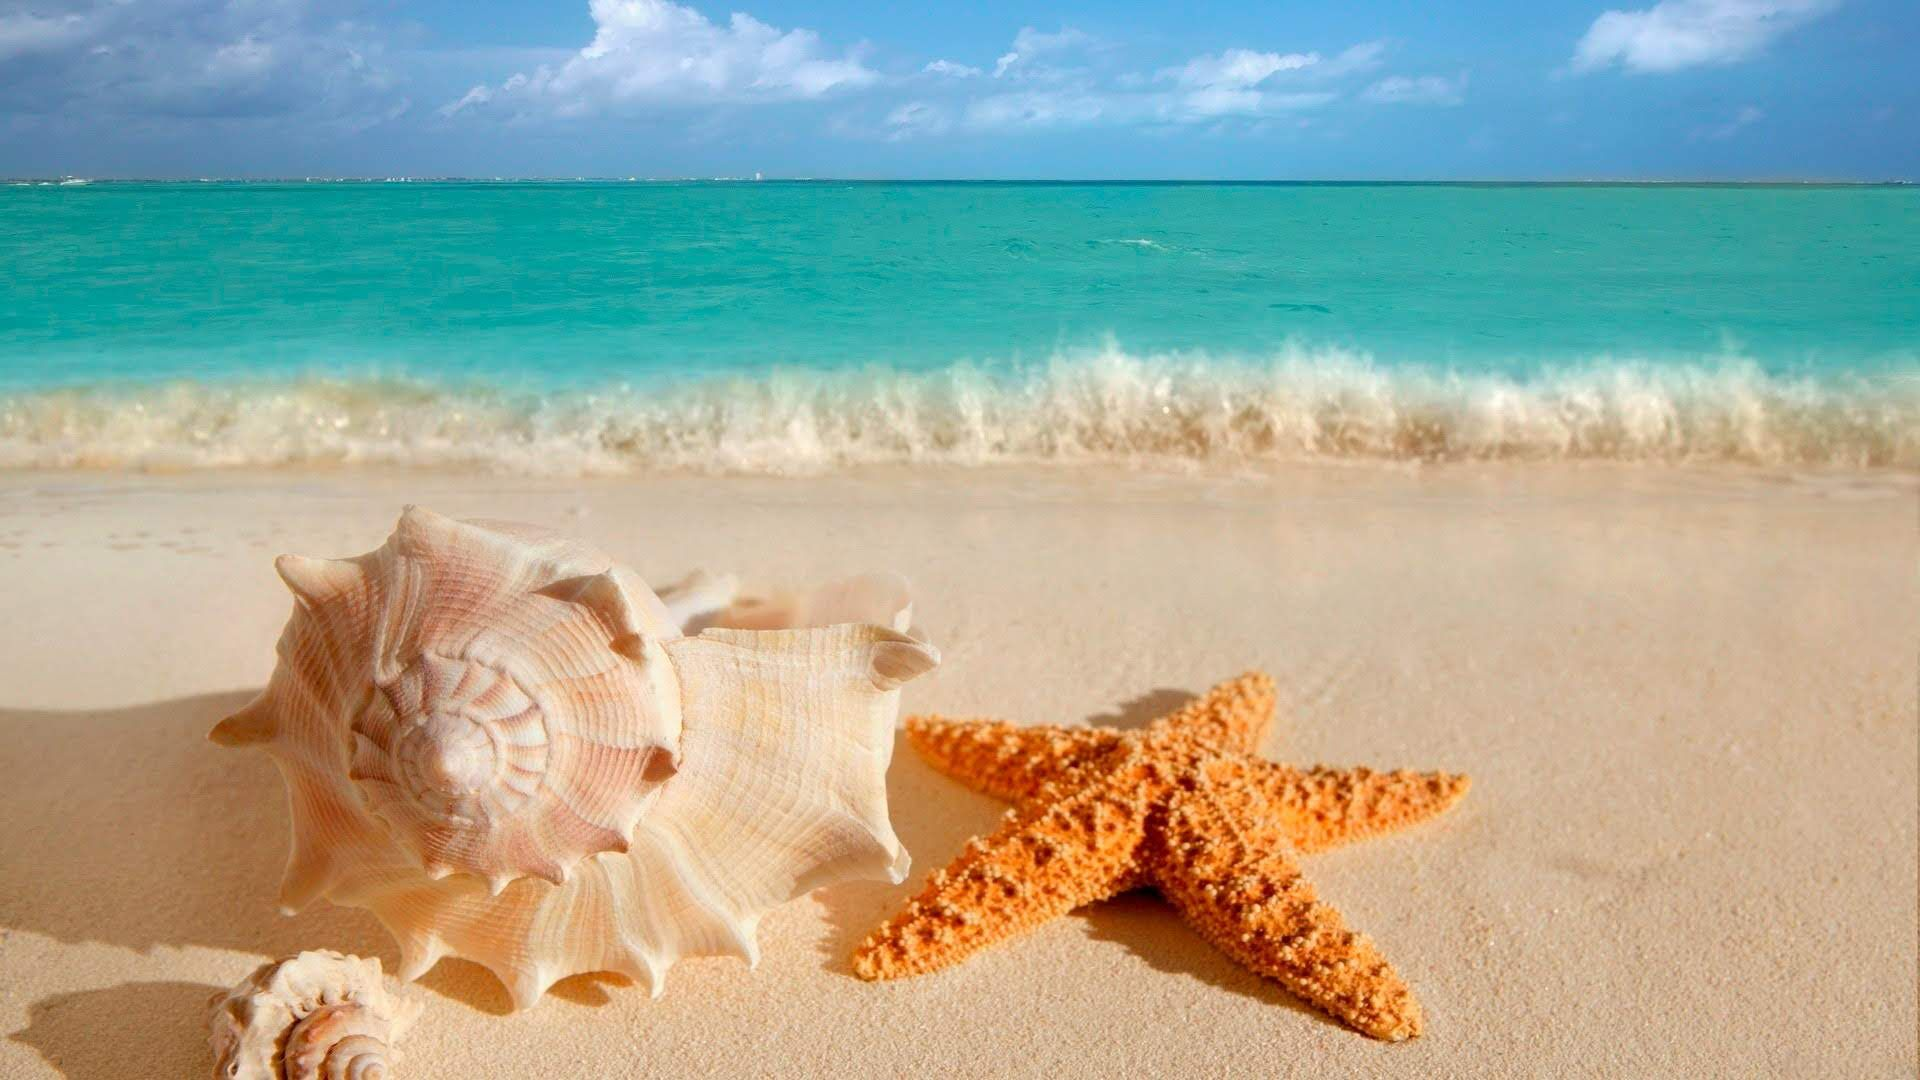 Pictures Of Shells And Starfish